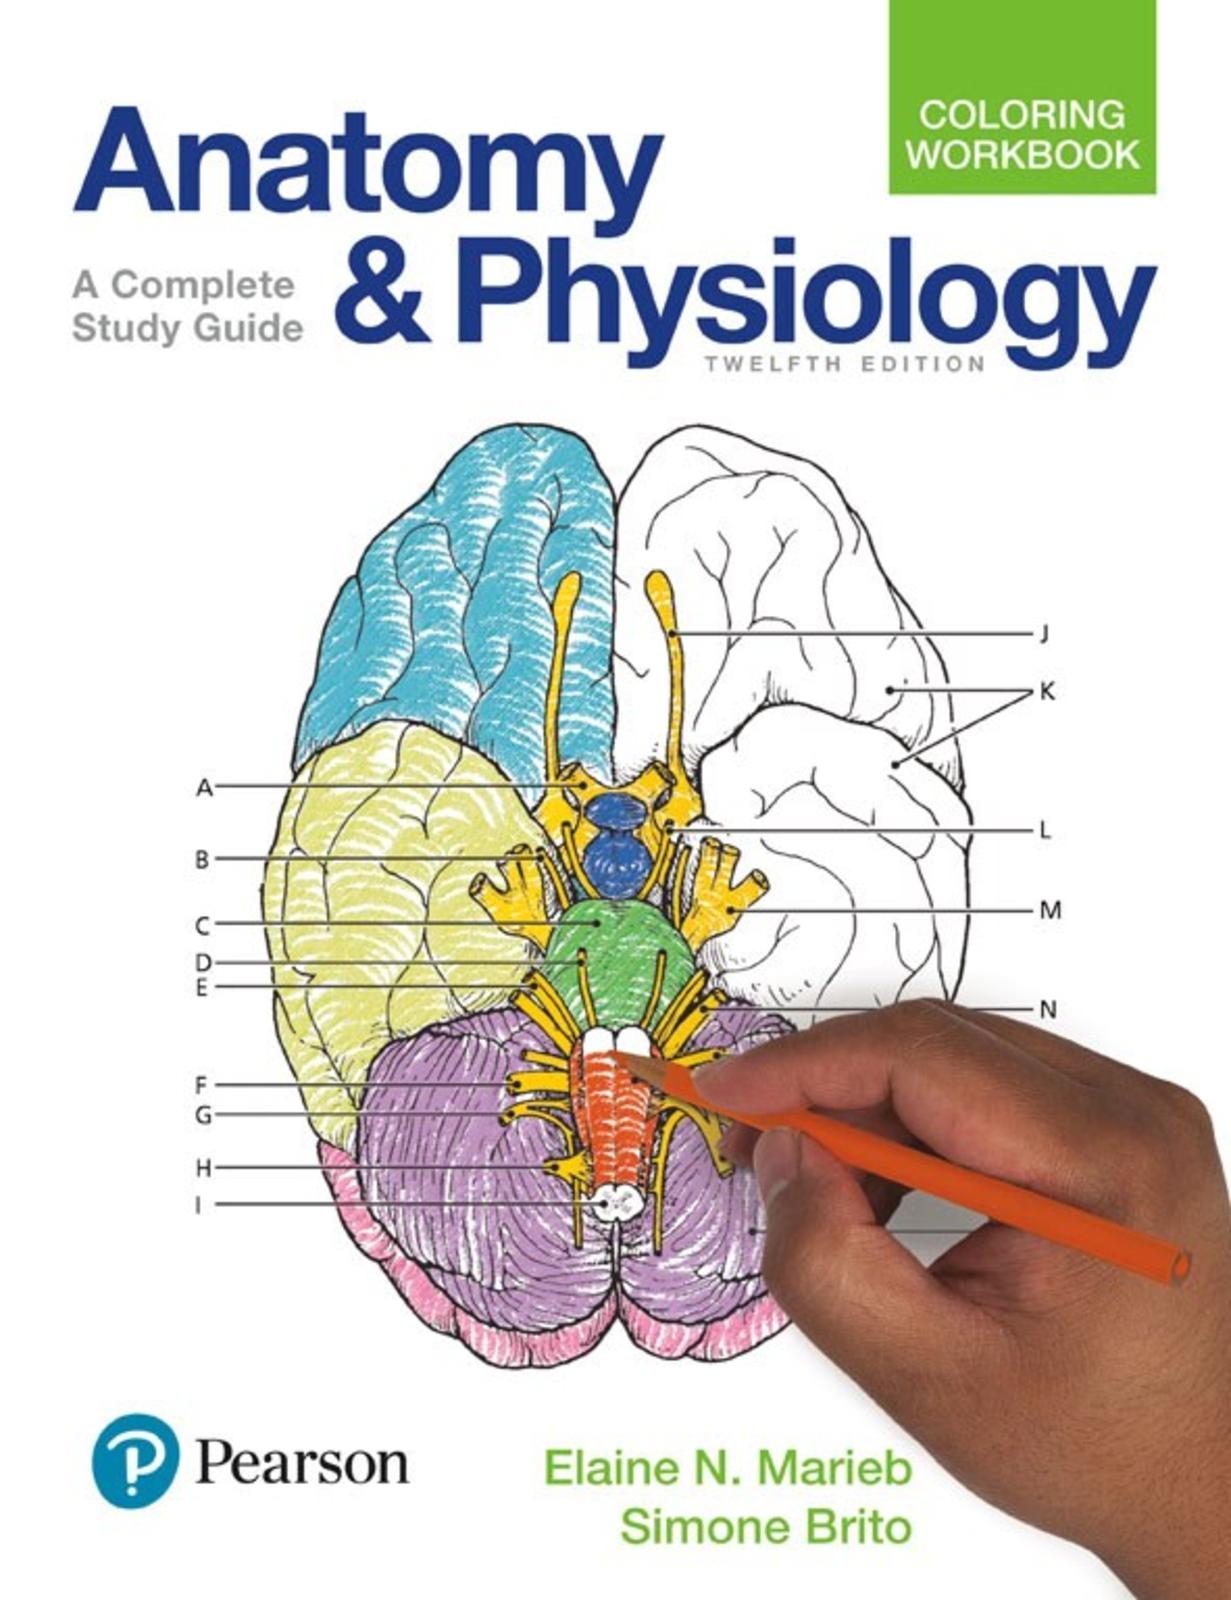 hight resolution of anatomy and physiology coloring workbook a complete study guide 12th edition 2017